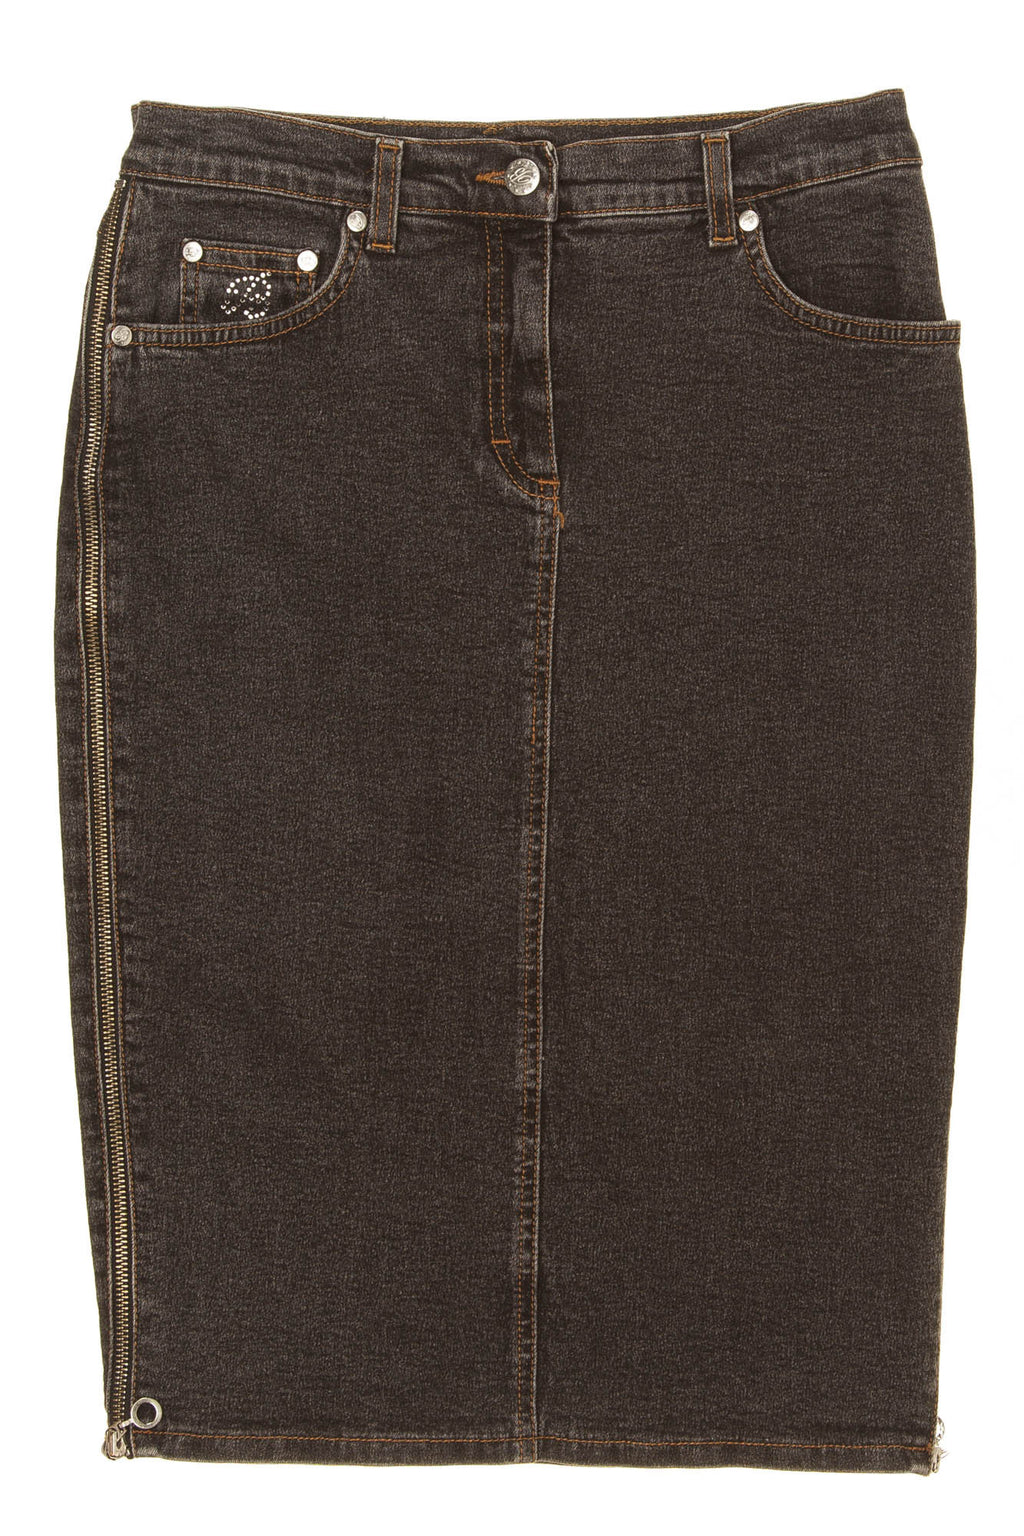 Blumarine - Jean Skirt - IT 40